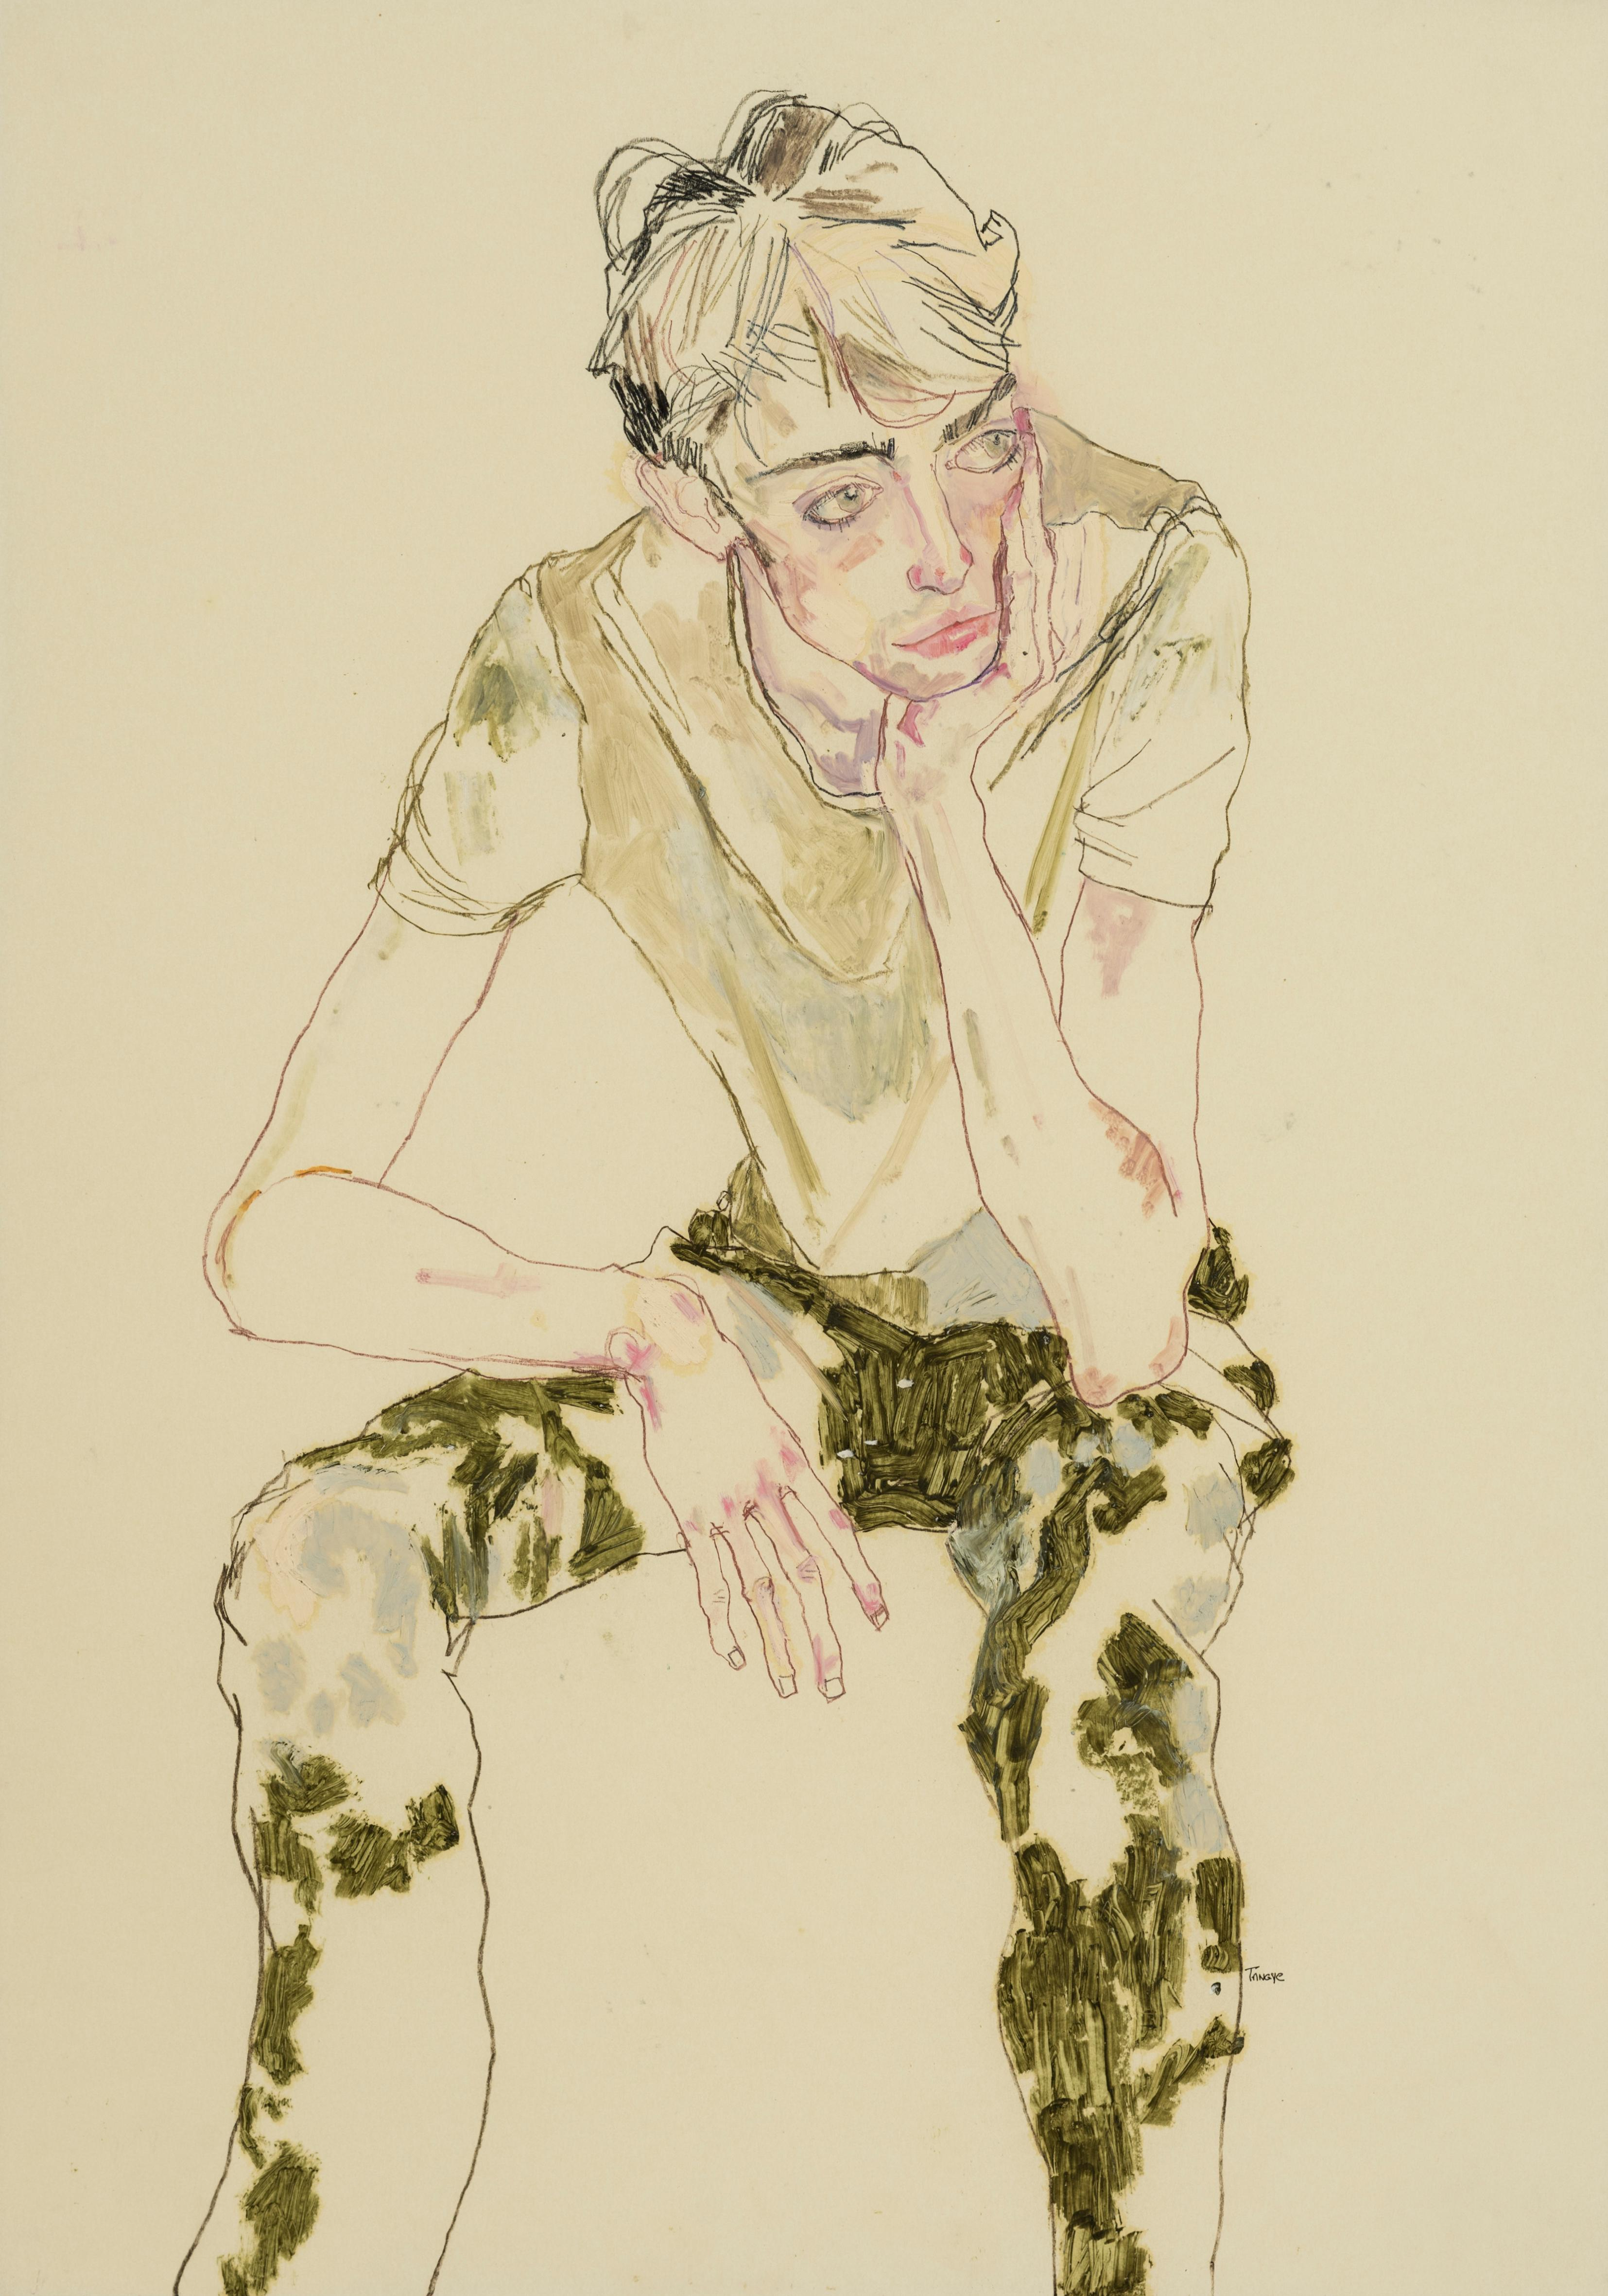 Ben Waters (Seated, Holding Head), Mixed media on Pergamenata parchment